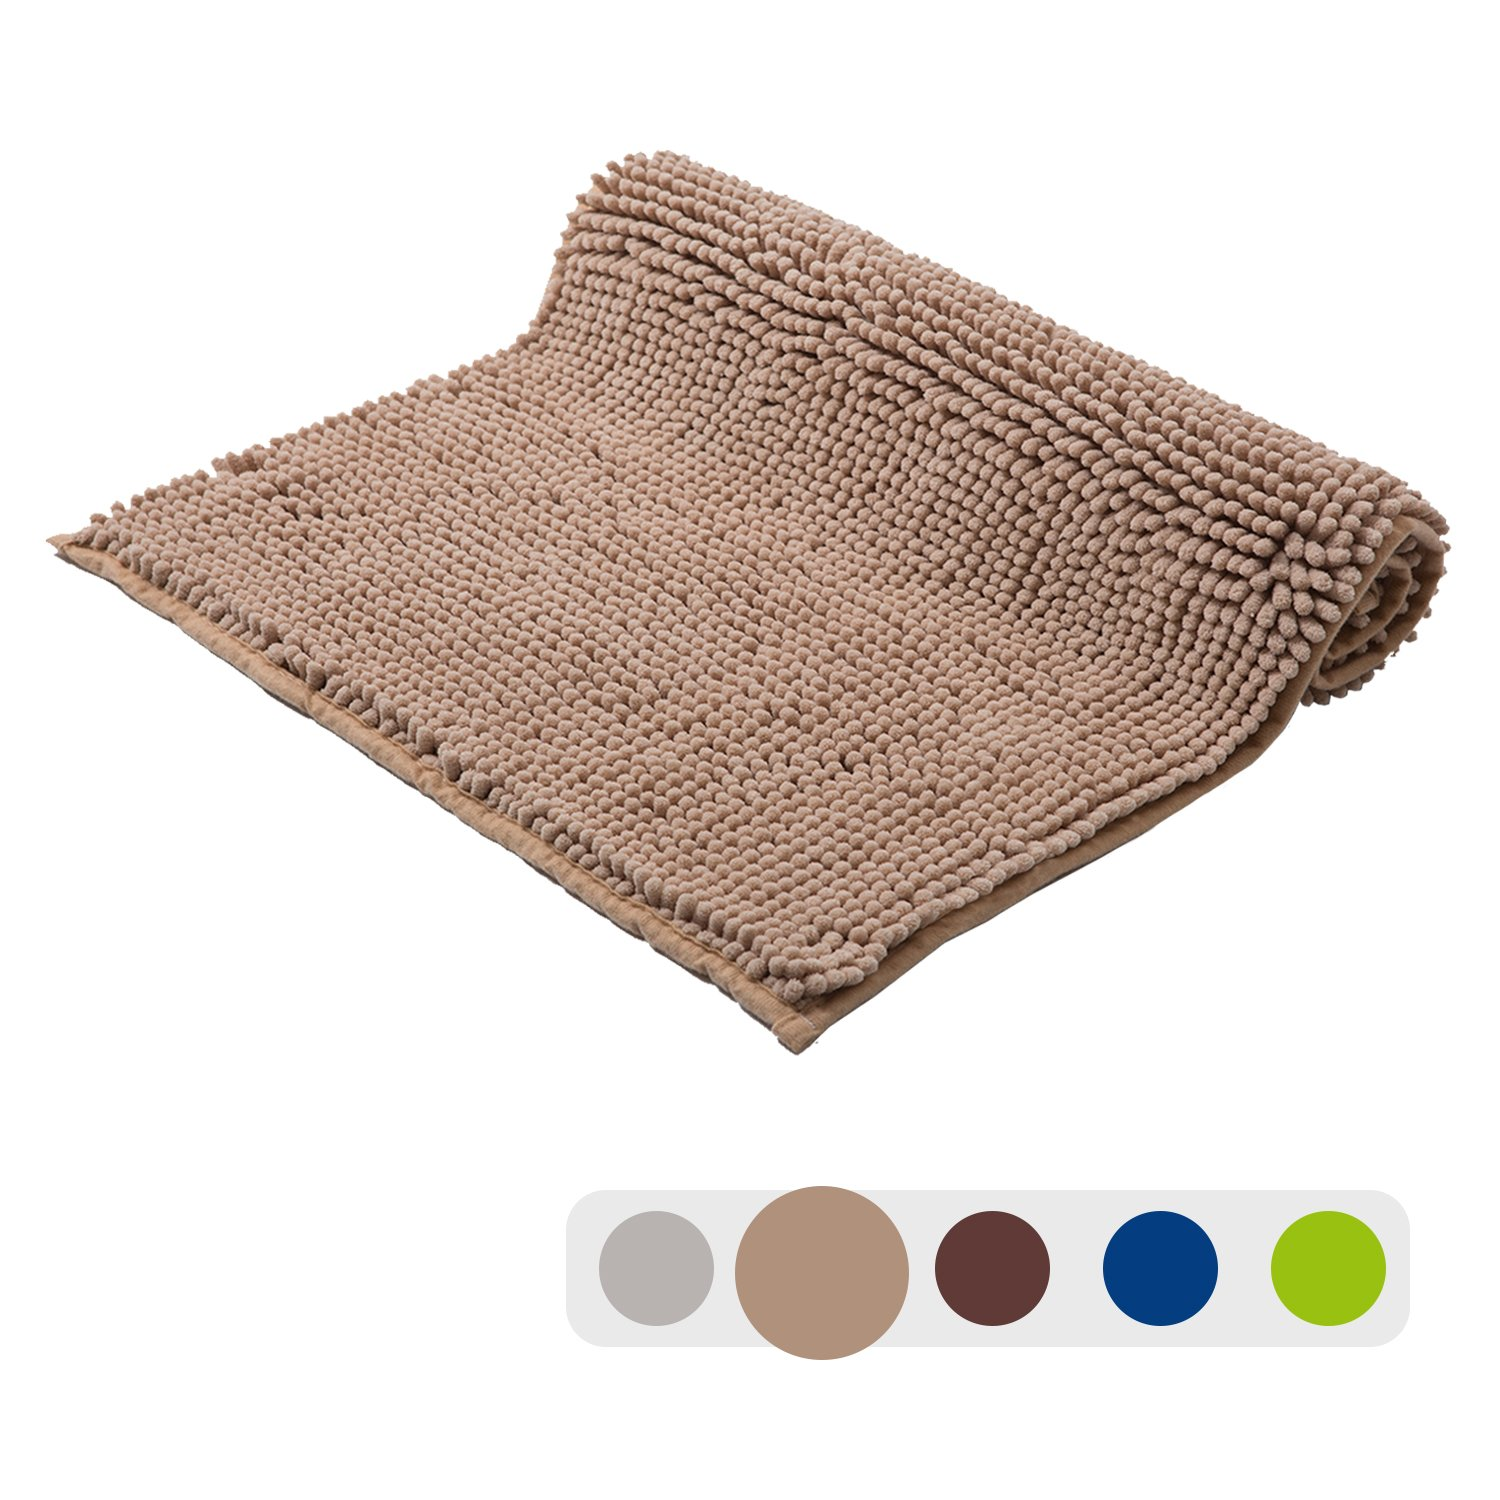 Grand Era 2 Piece Microfiber Shag Bathroom Mats Set Super Soft Chenille Bathmat 20 x 31 with Contour Rug 16 x 20 Perfect for Bathroom, Green KYIGR50802